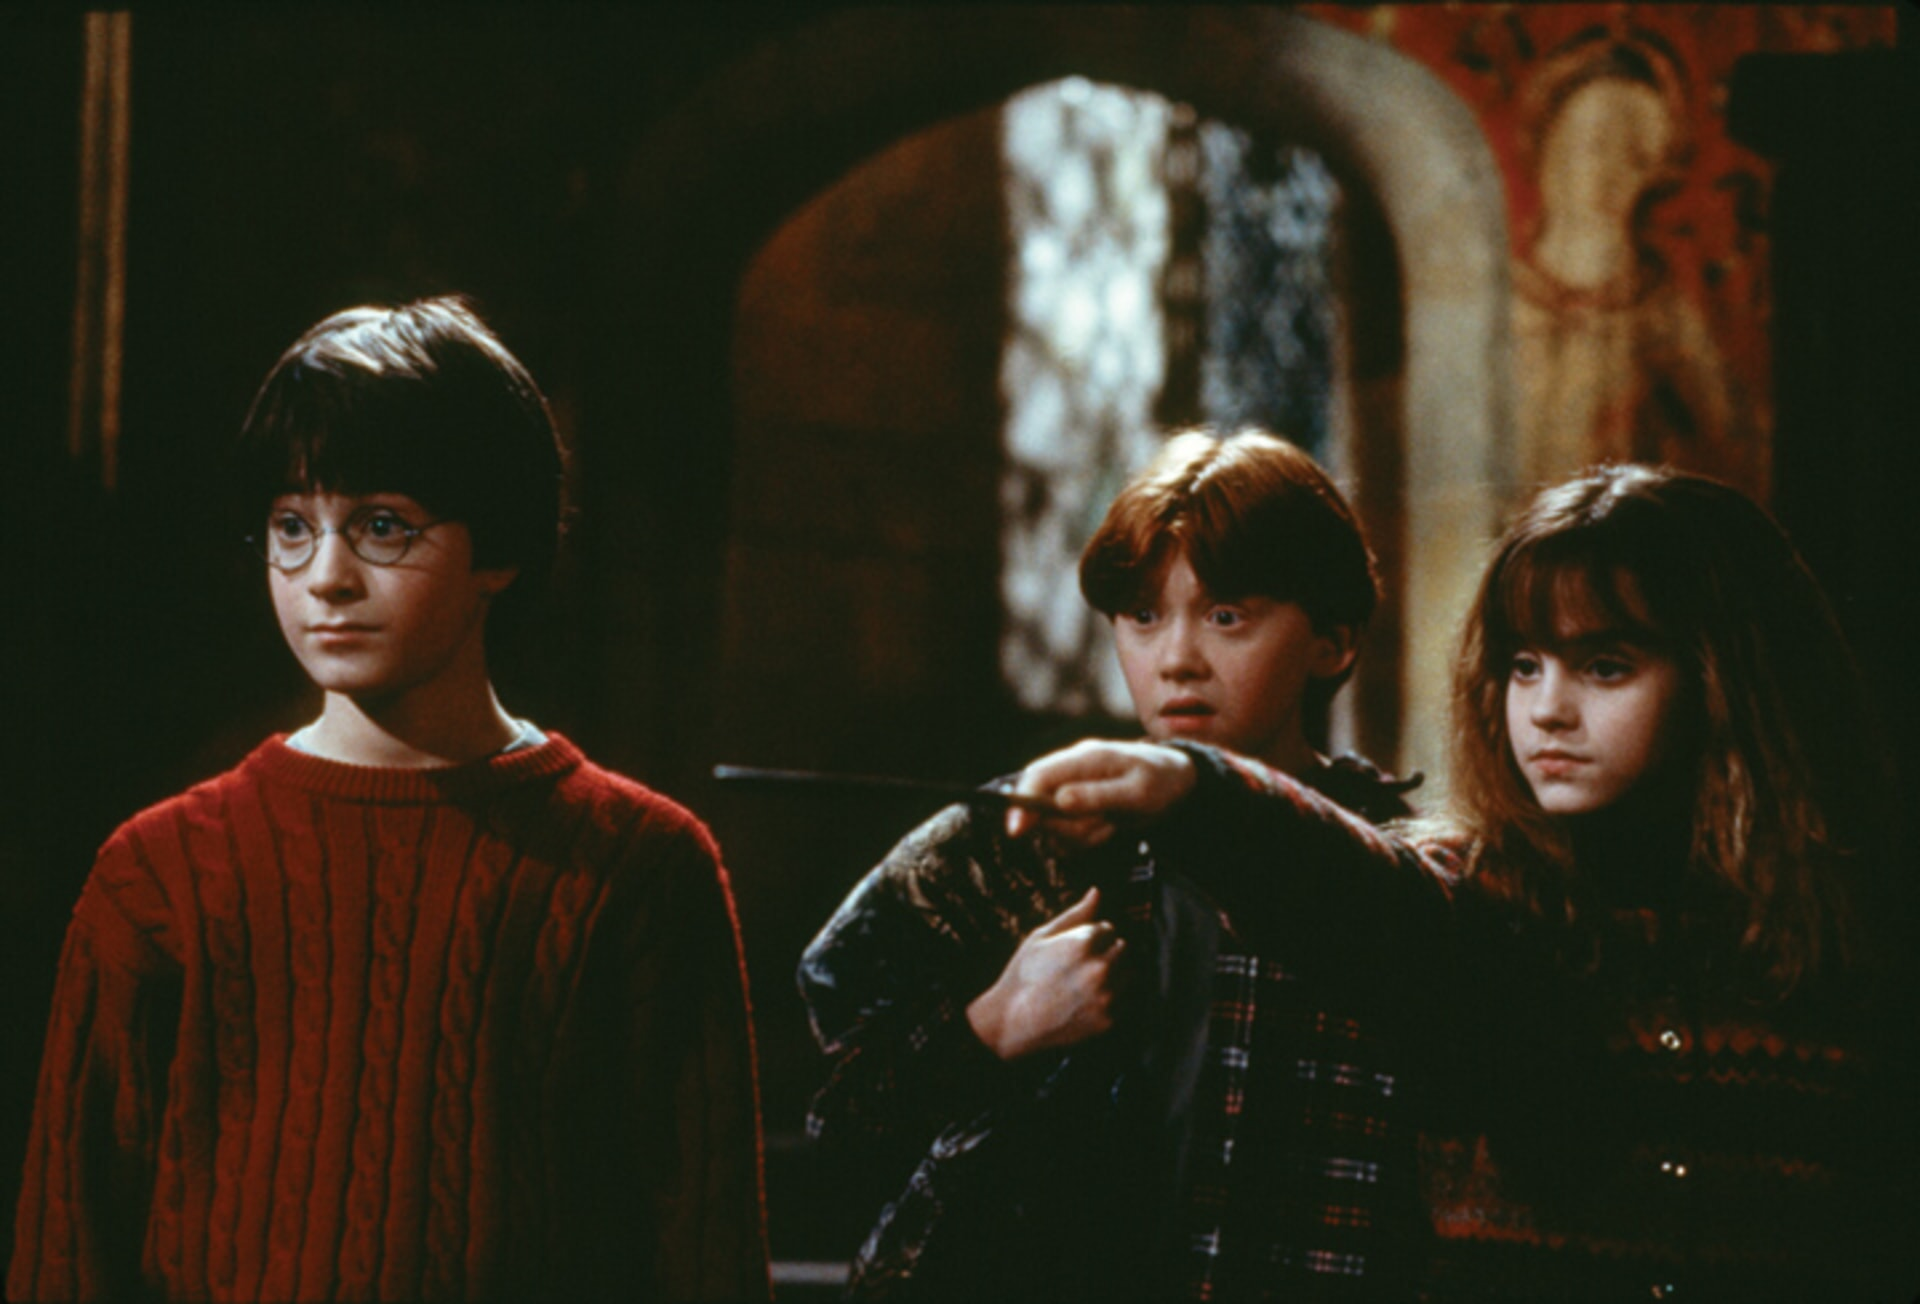 Harry Potter and the Philosopher's Stone - Image 9